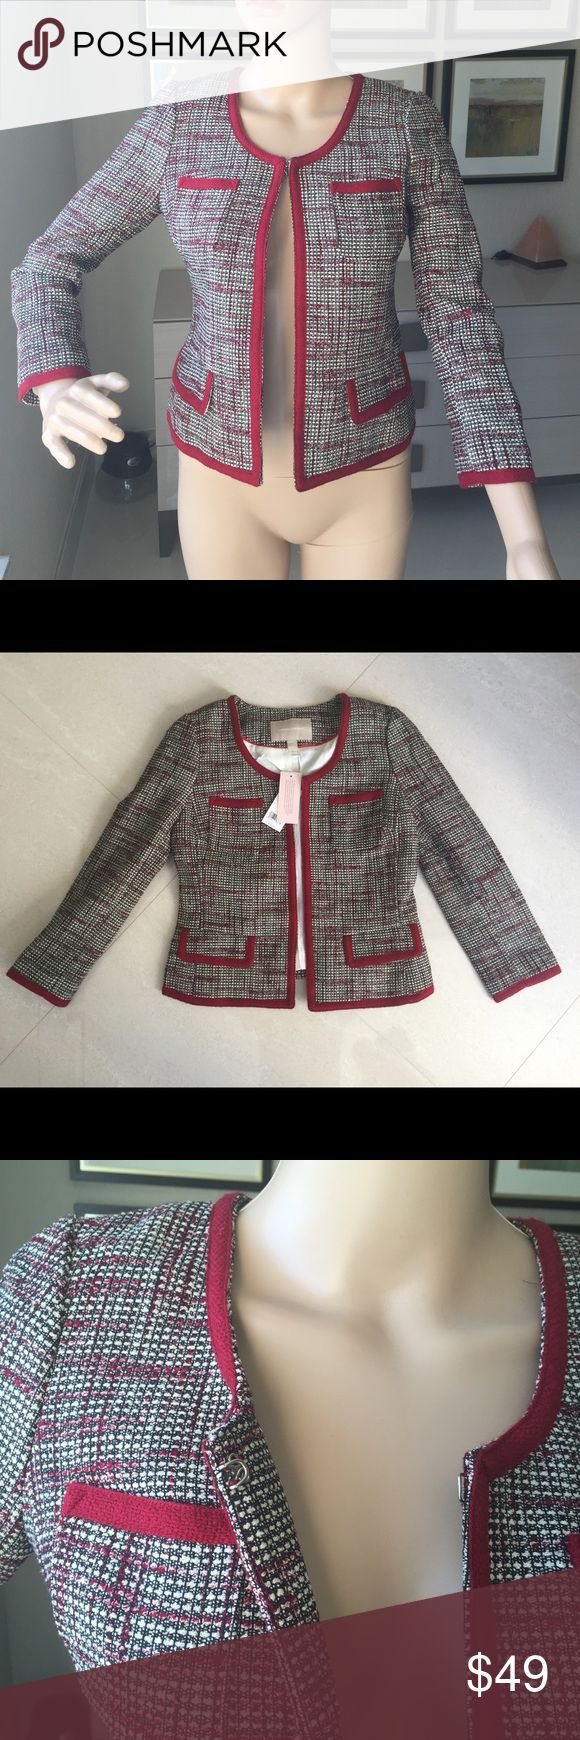 Banana Republic Blazer size 0P Banana Republic Blazer size 0P. Multicolored with red accents at the pockets and trim. Tags still attached. Originally purchased for $130. Has eye hook closures on the front Banana Republic Jackets & Coats Blazers